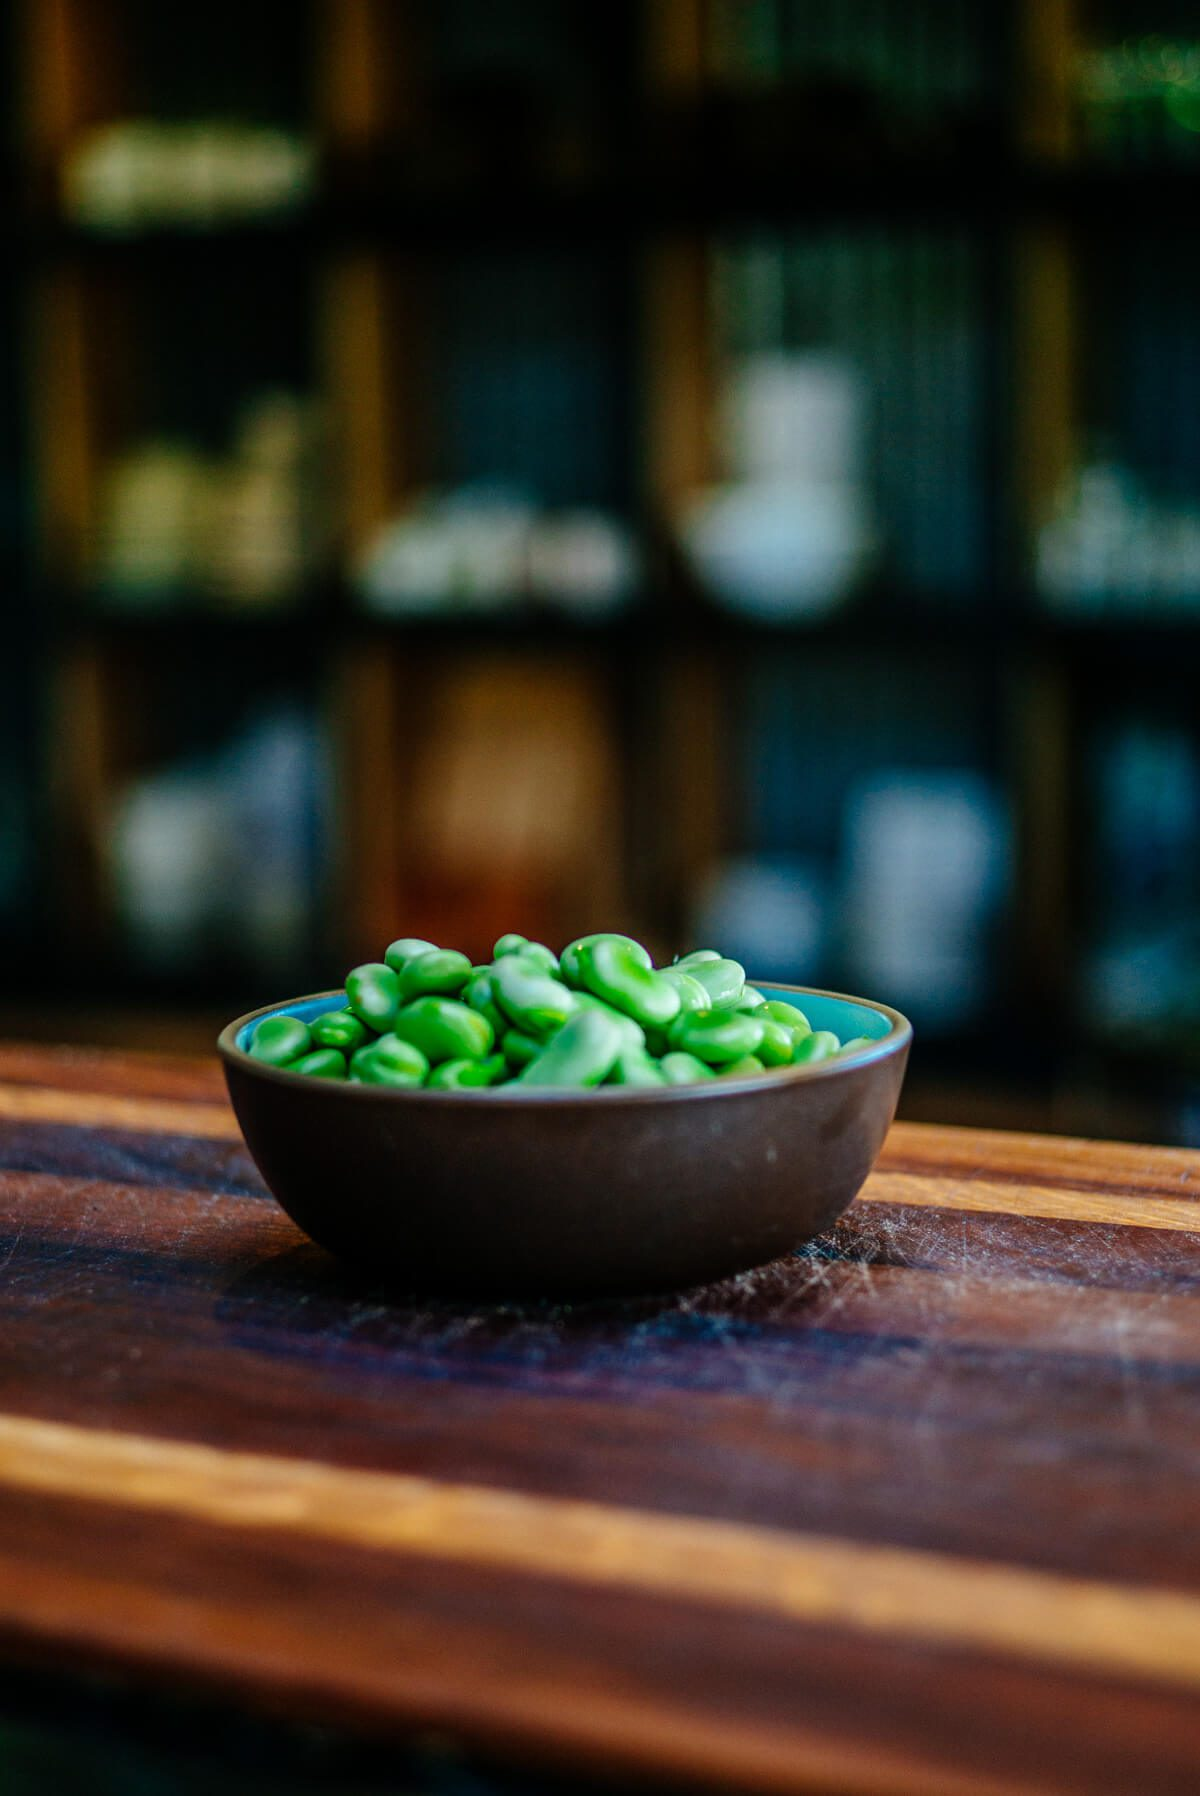 Shelled Fava Beans in a bowl